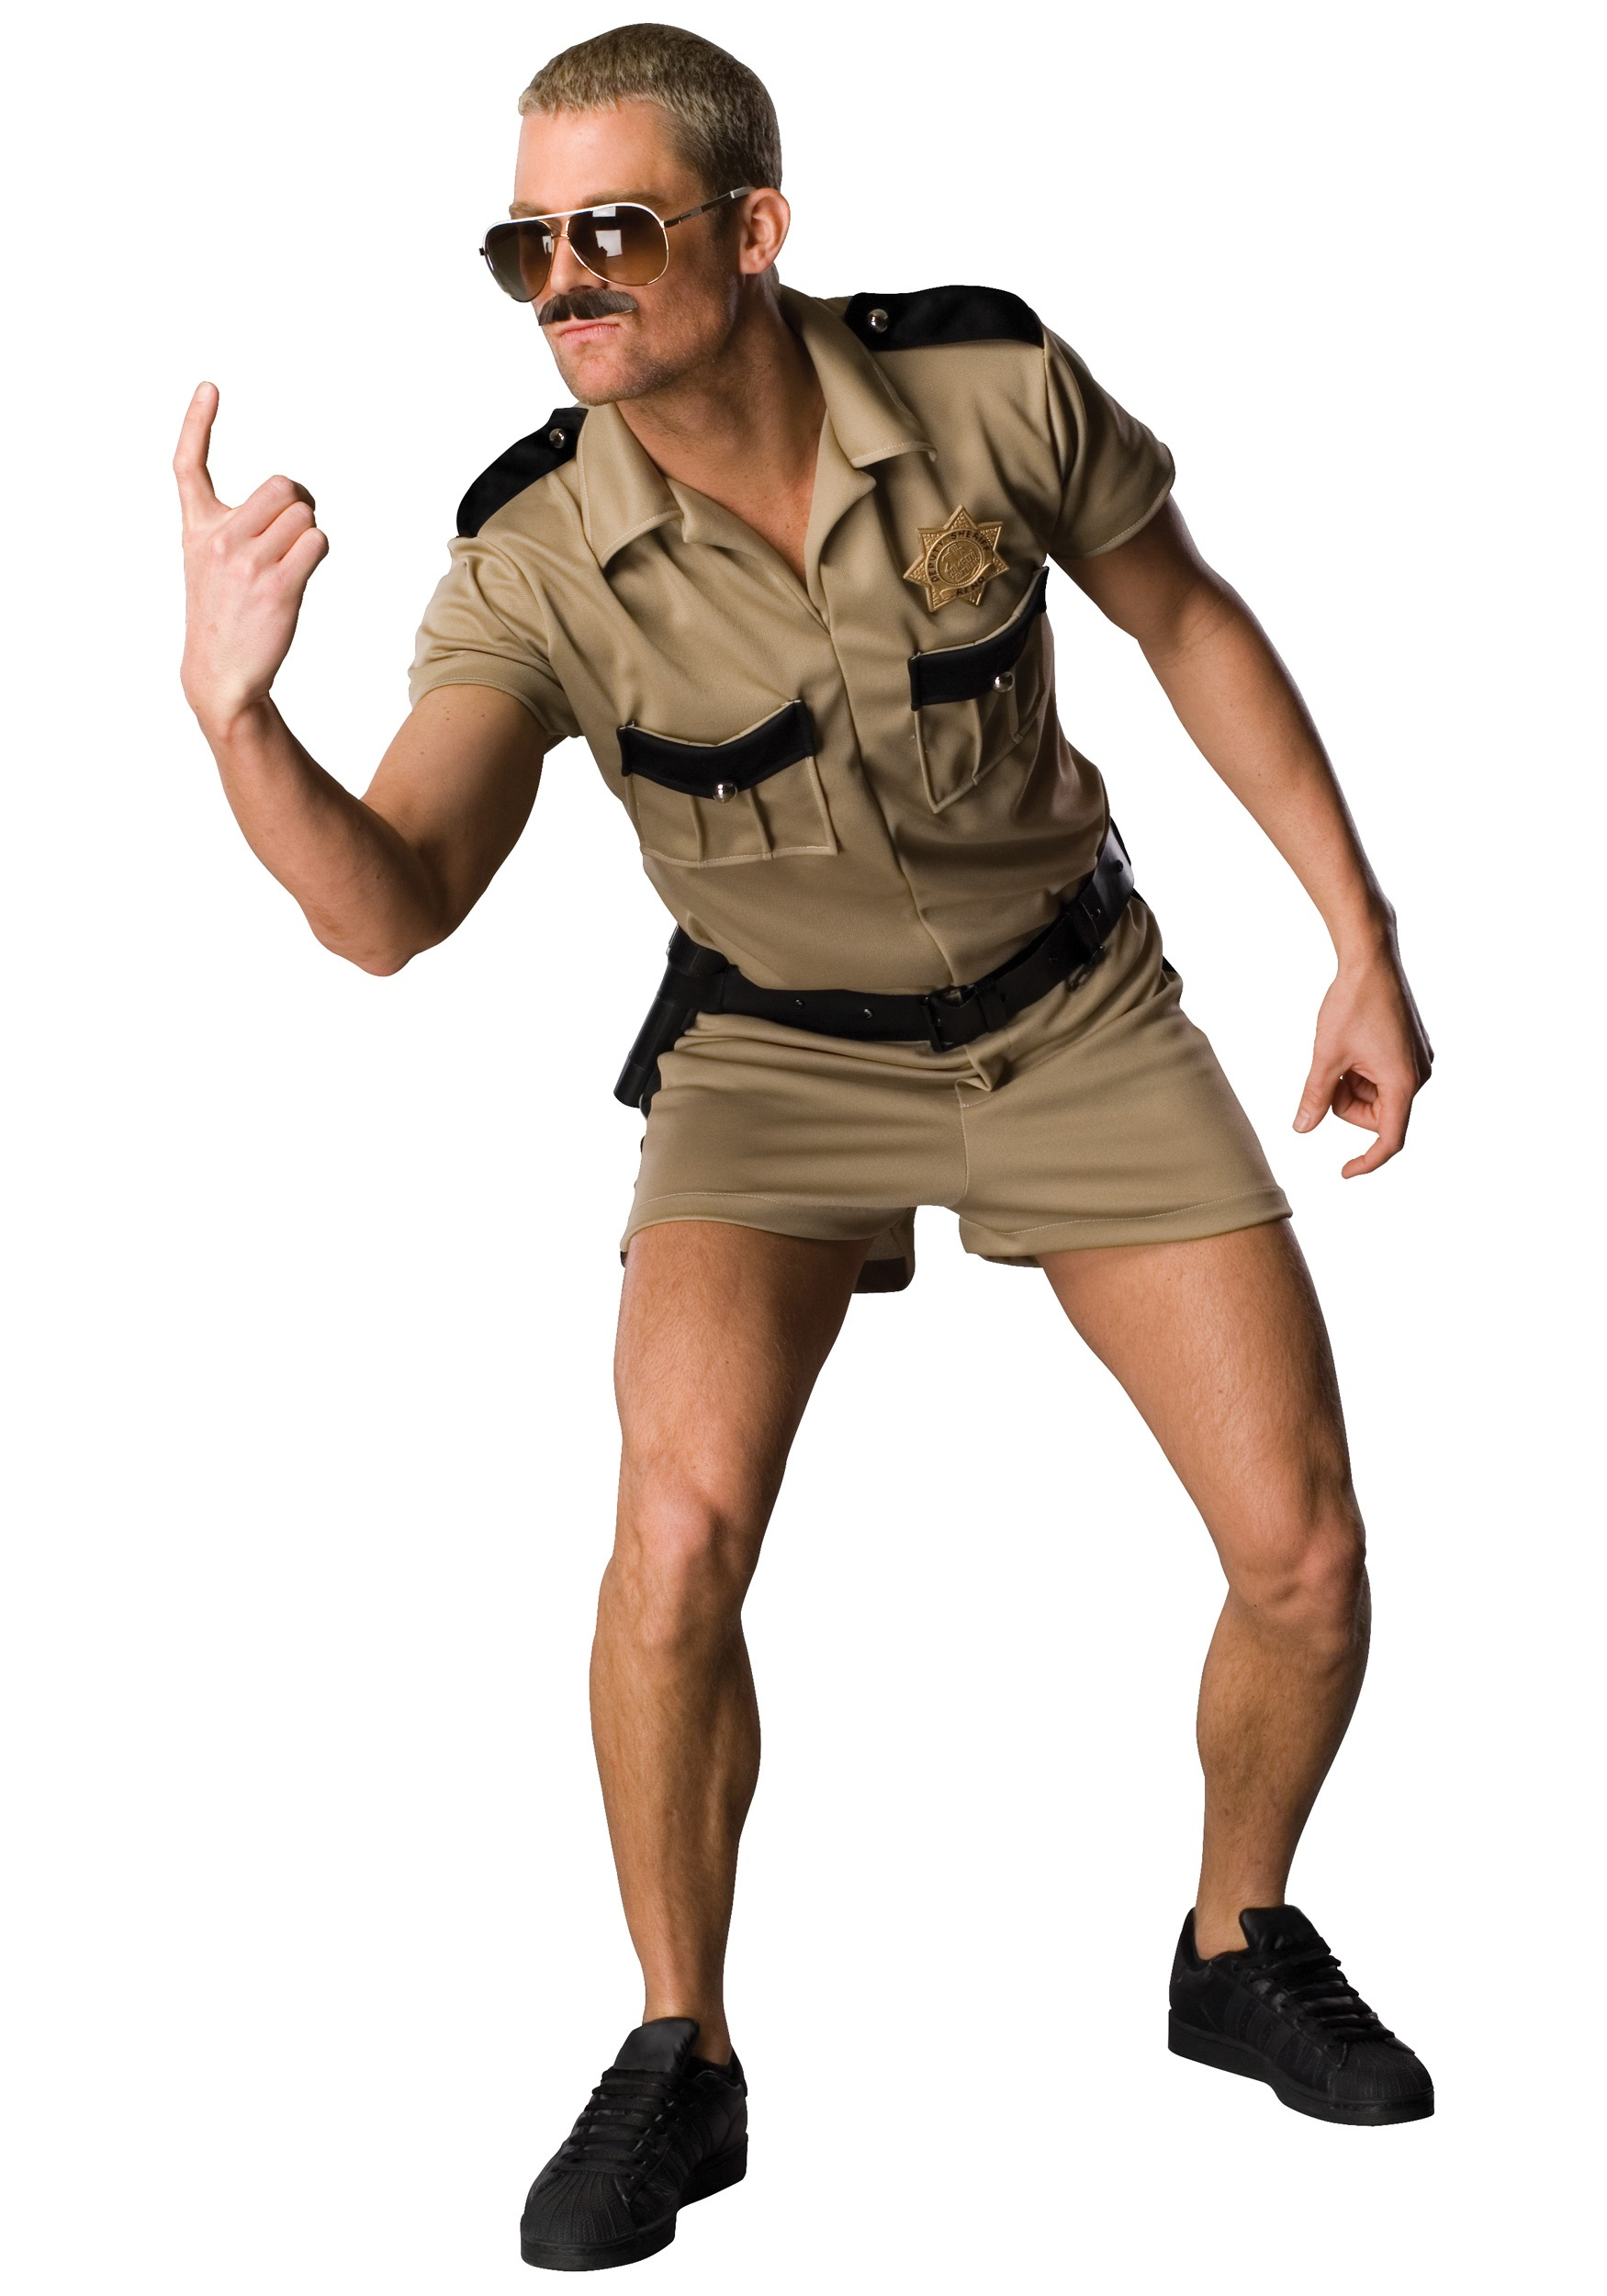 Lt. Dangle Costume  sc 1 st  Halloween Costumes & Funny Halloween Costumes For Men u0026 Women